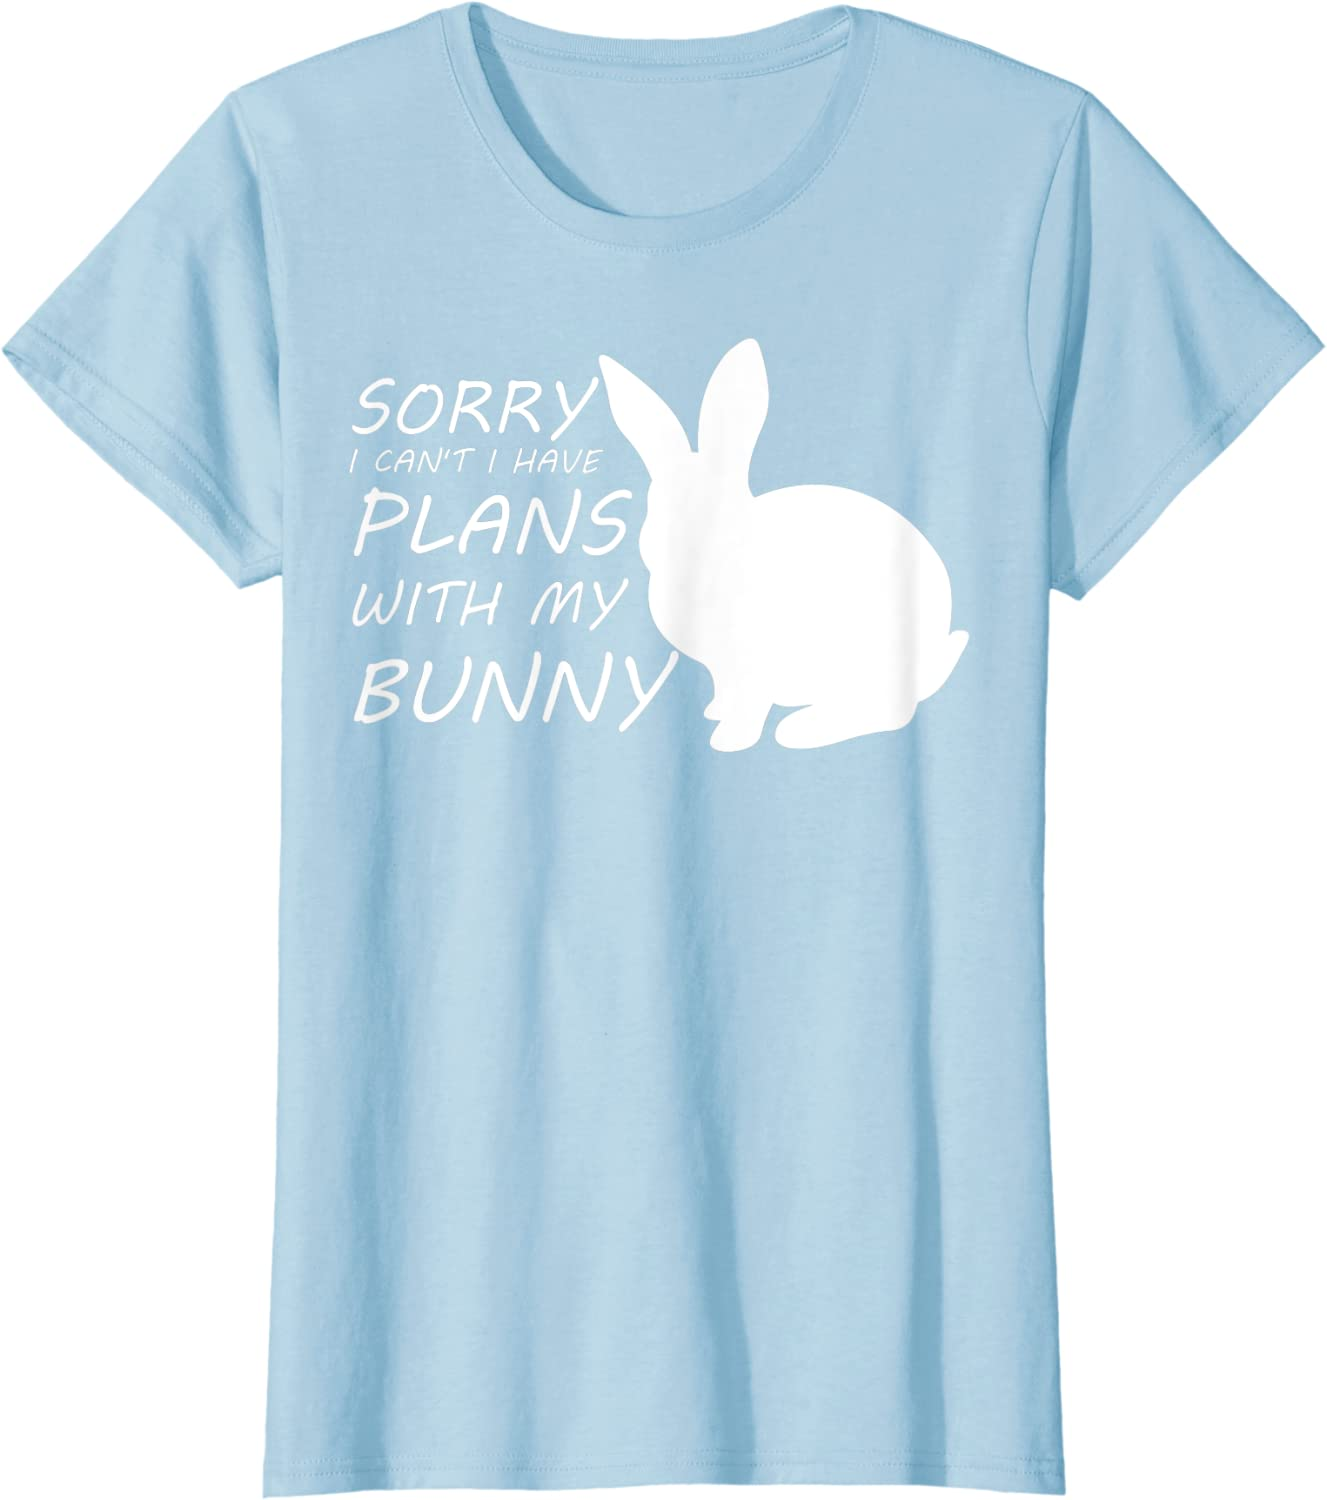 Painted Bunny T-Shirt I Have Plans with My Bunny Tee